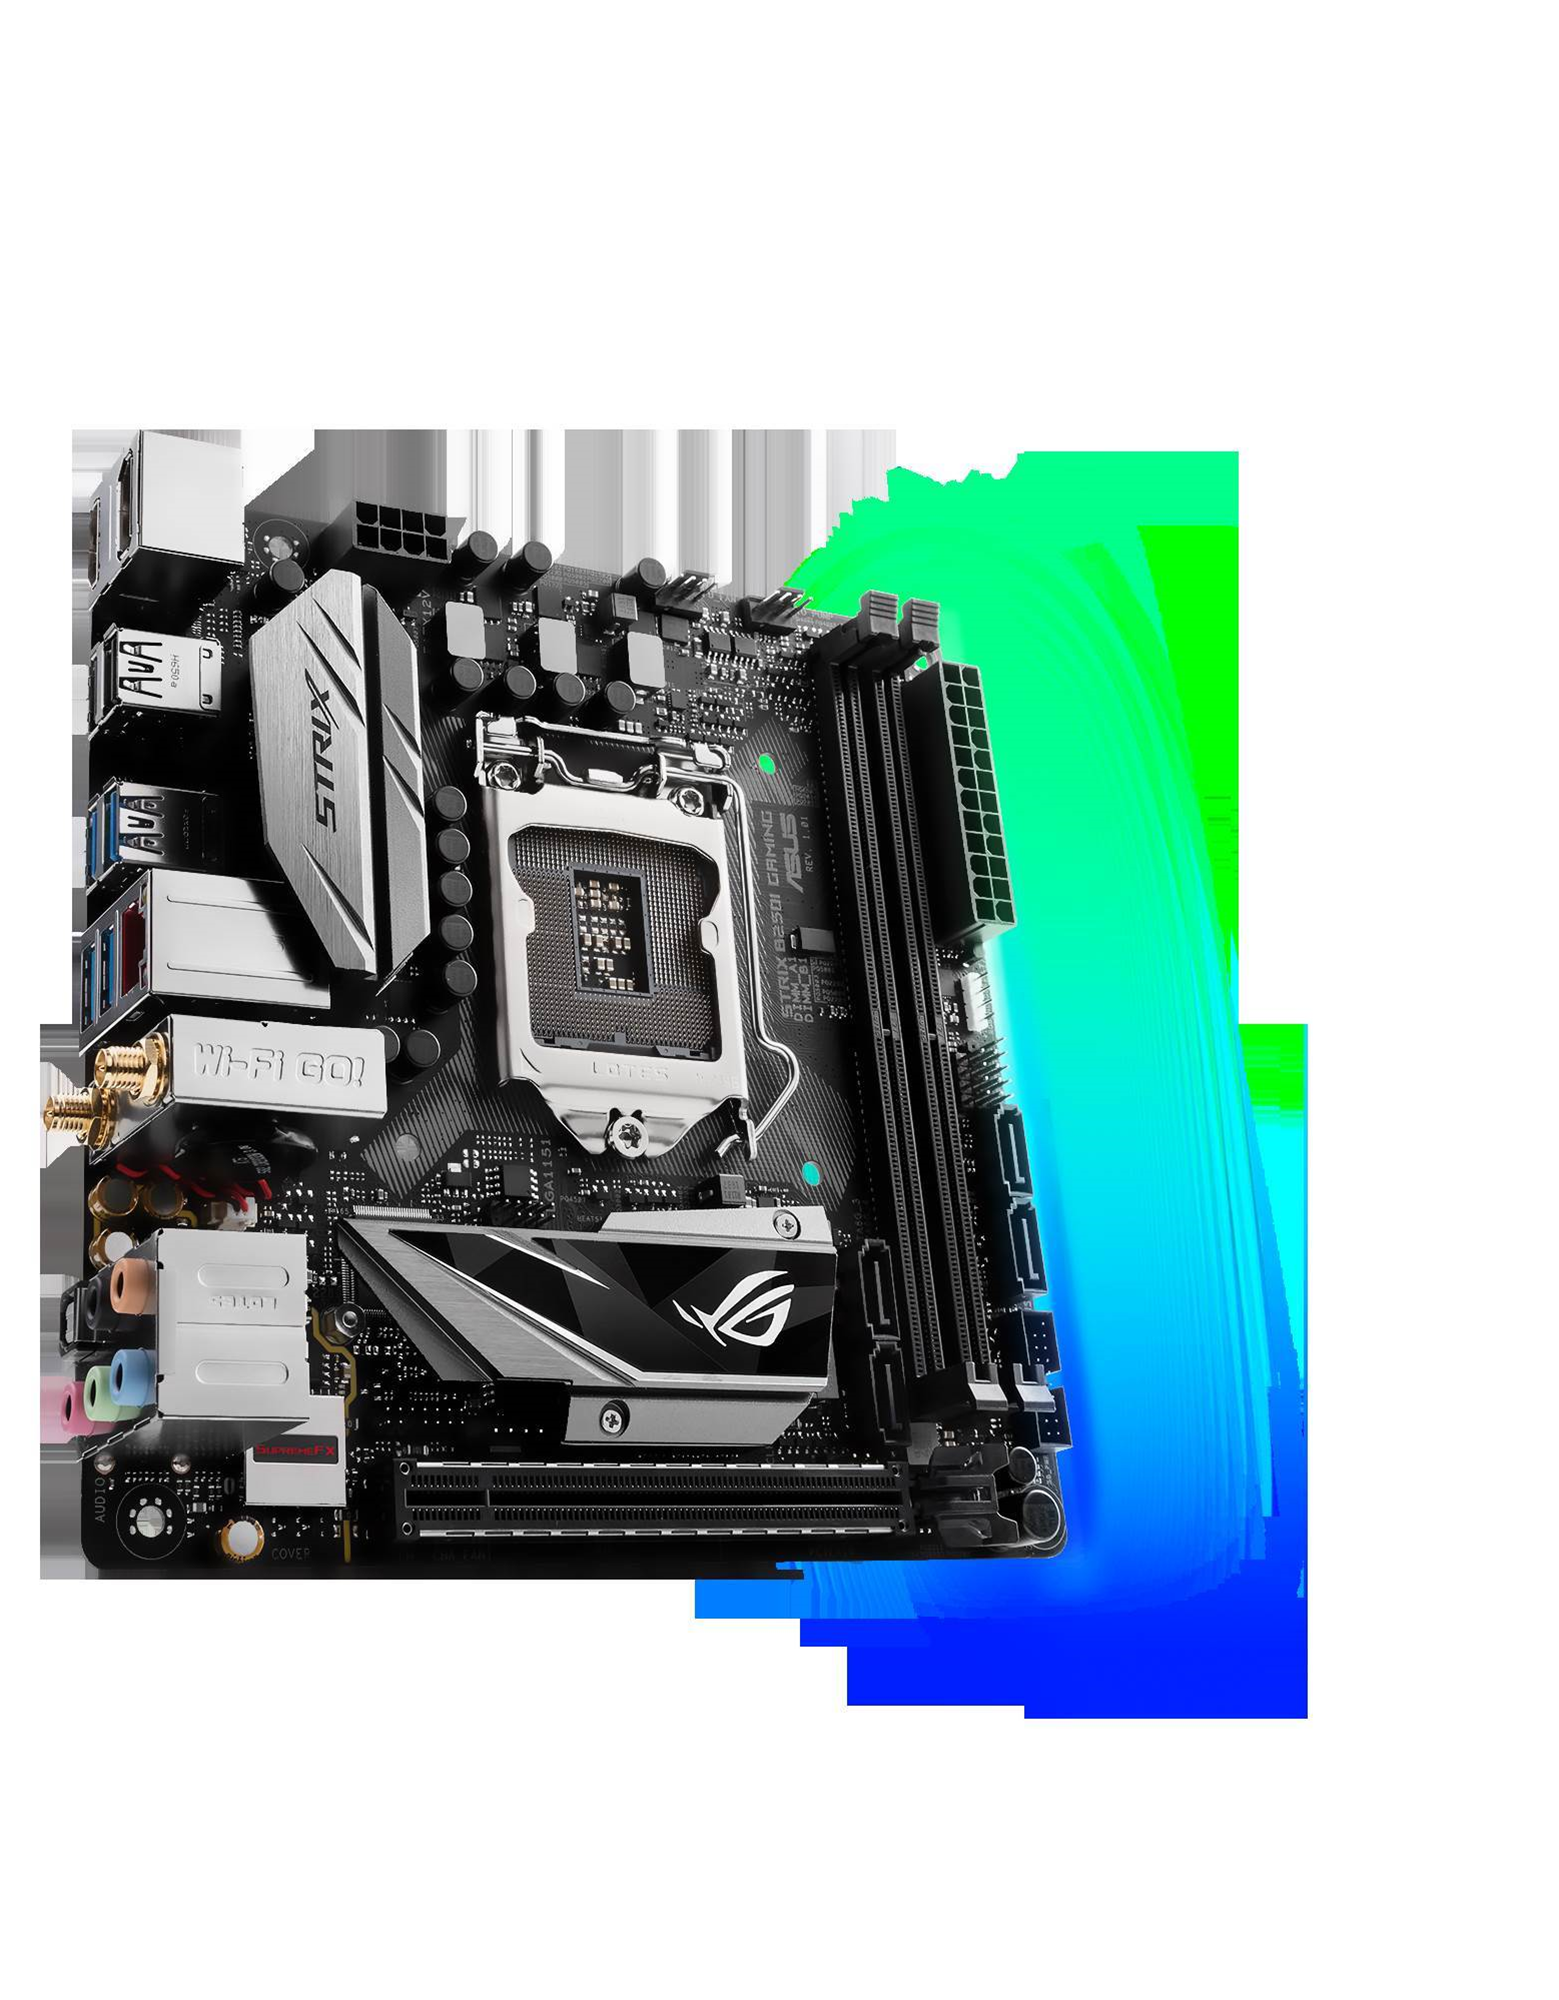 Asus doubles down with two new mini-ITX Strix gaming motherboards